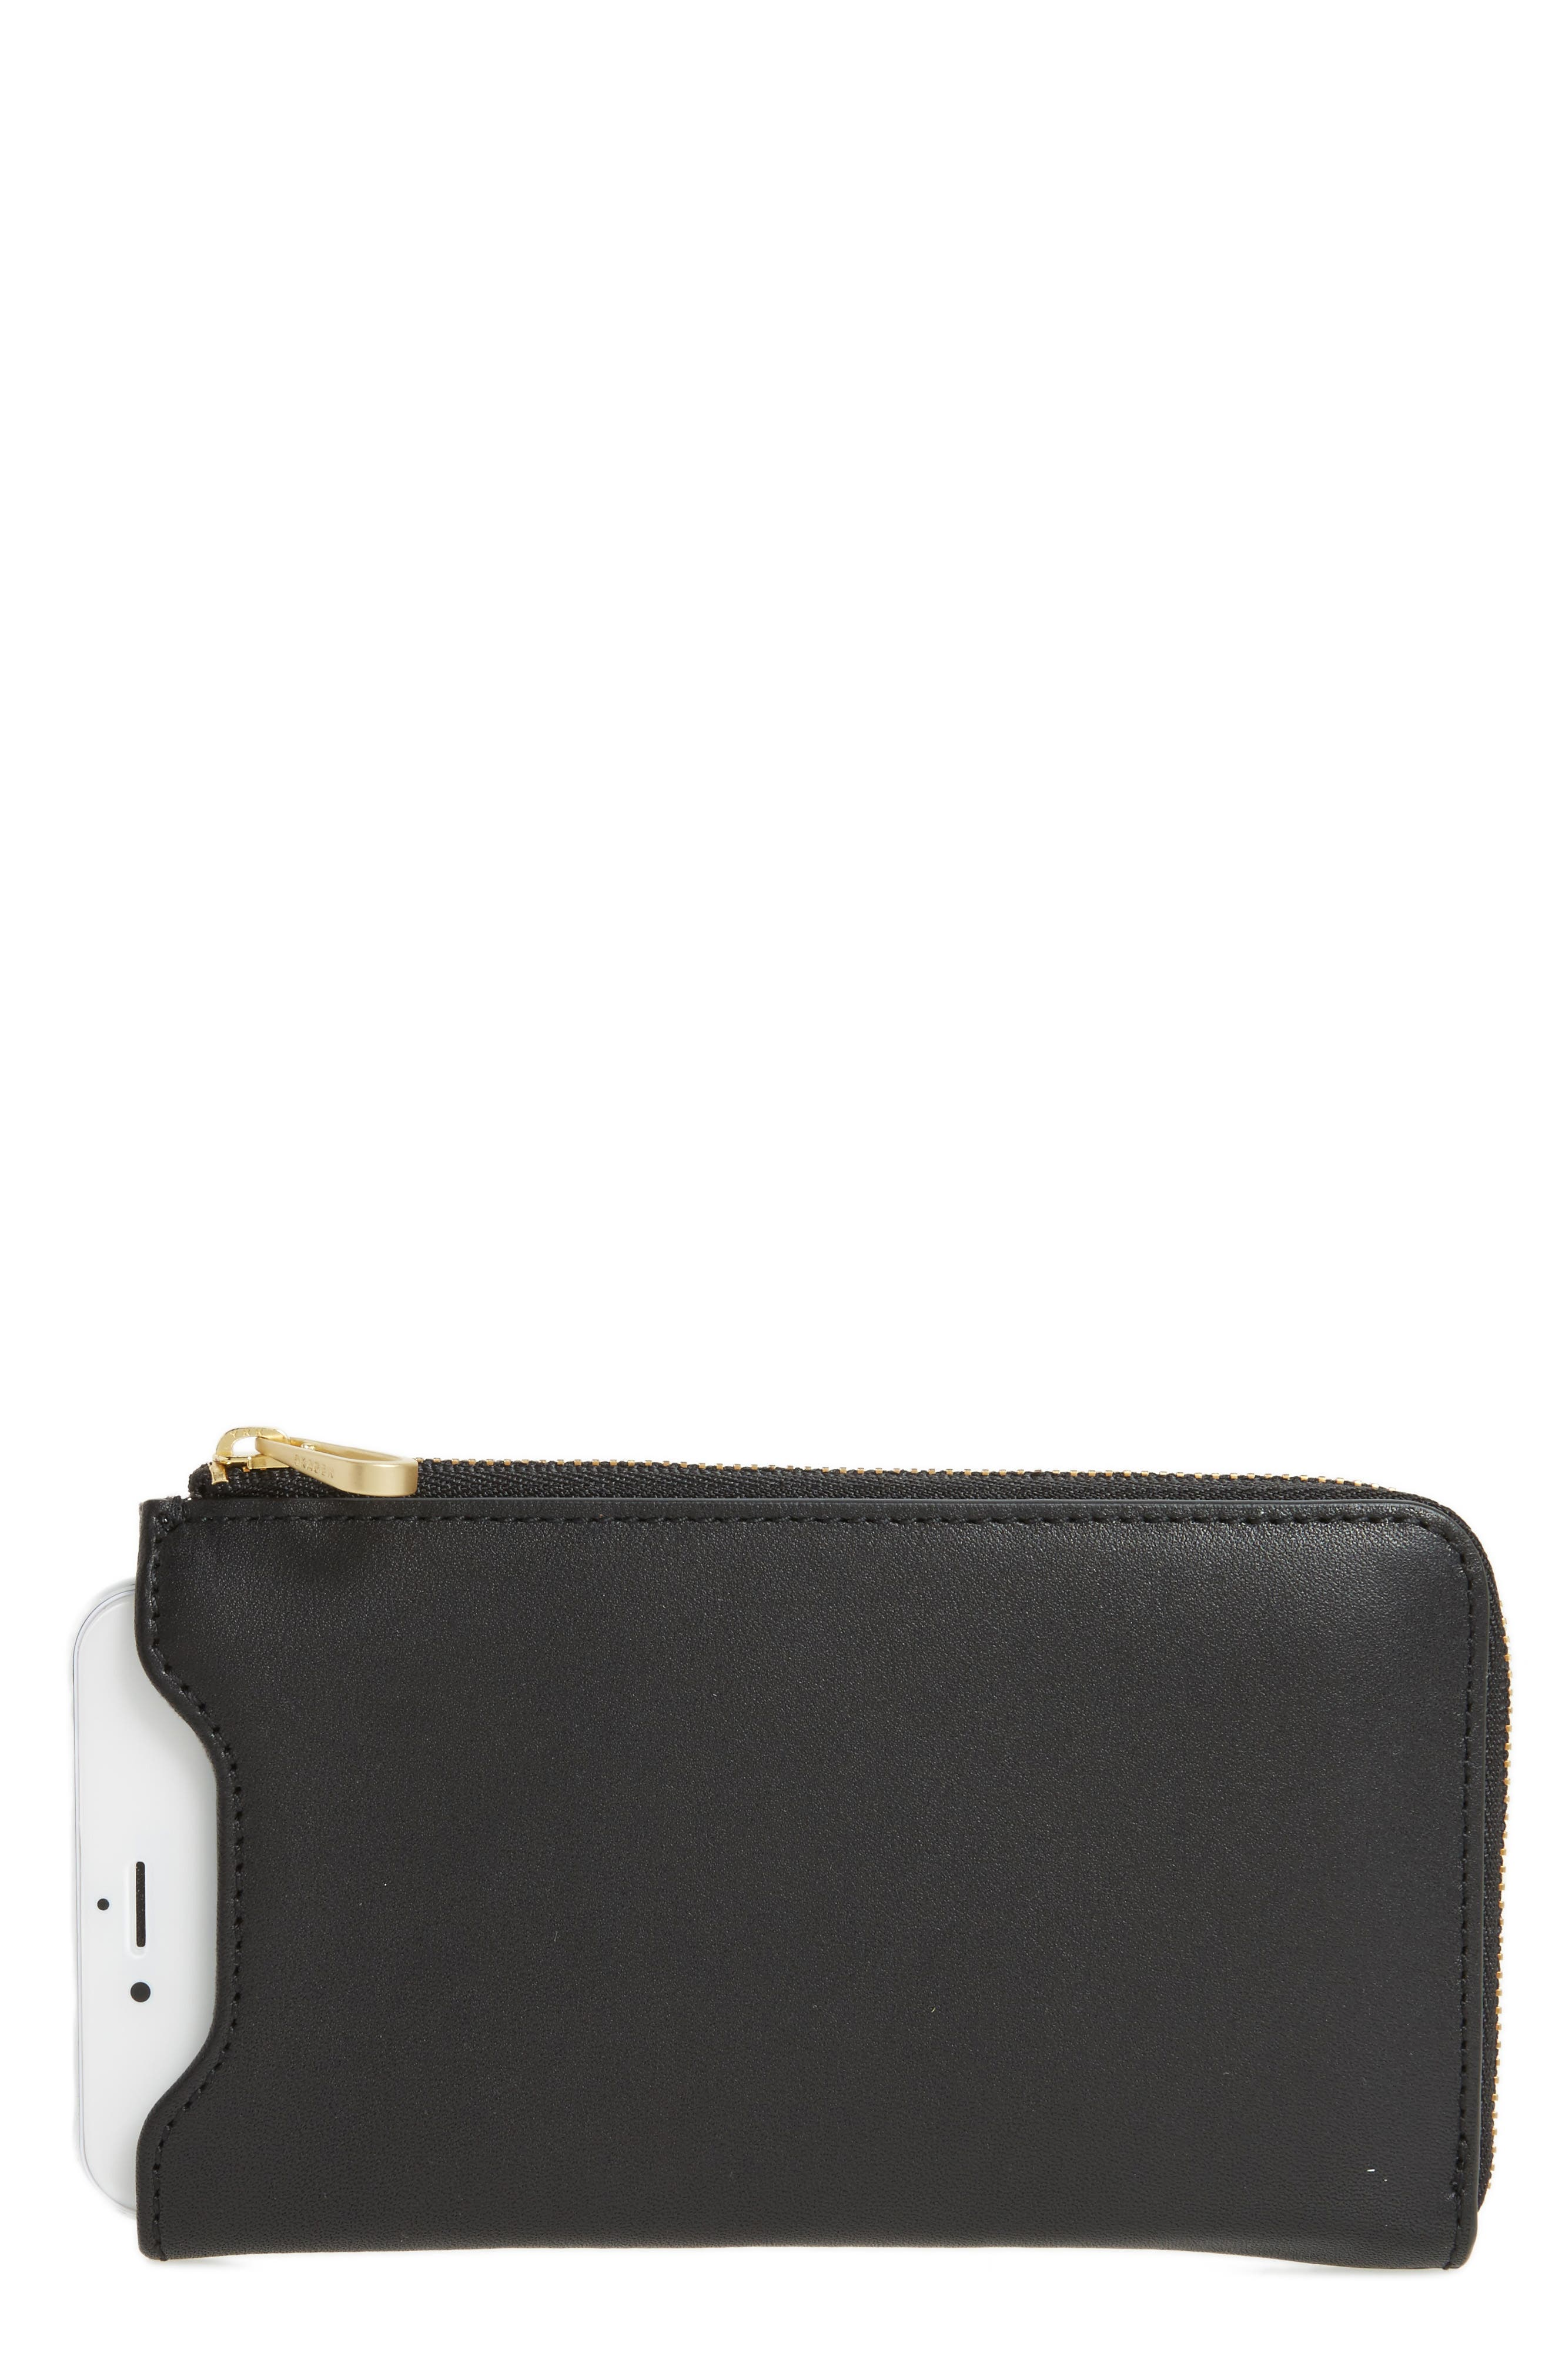 Lilli iPhone 6/6s/7 Leather Sleeve,                             Main thumbnail 1, color,                             Black